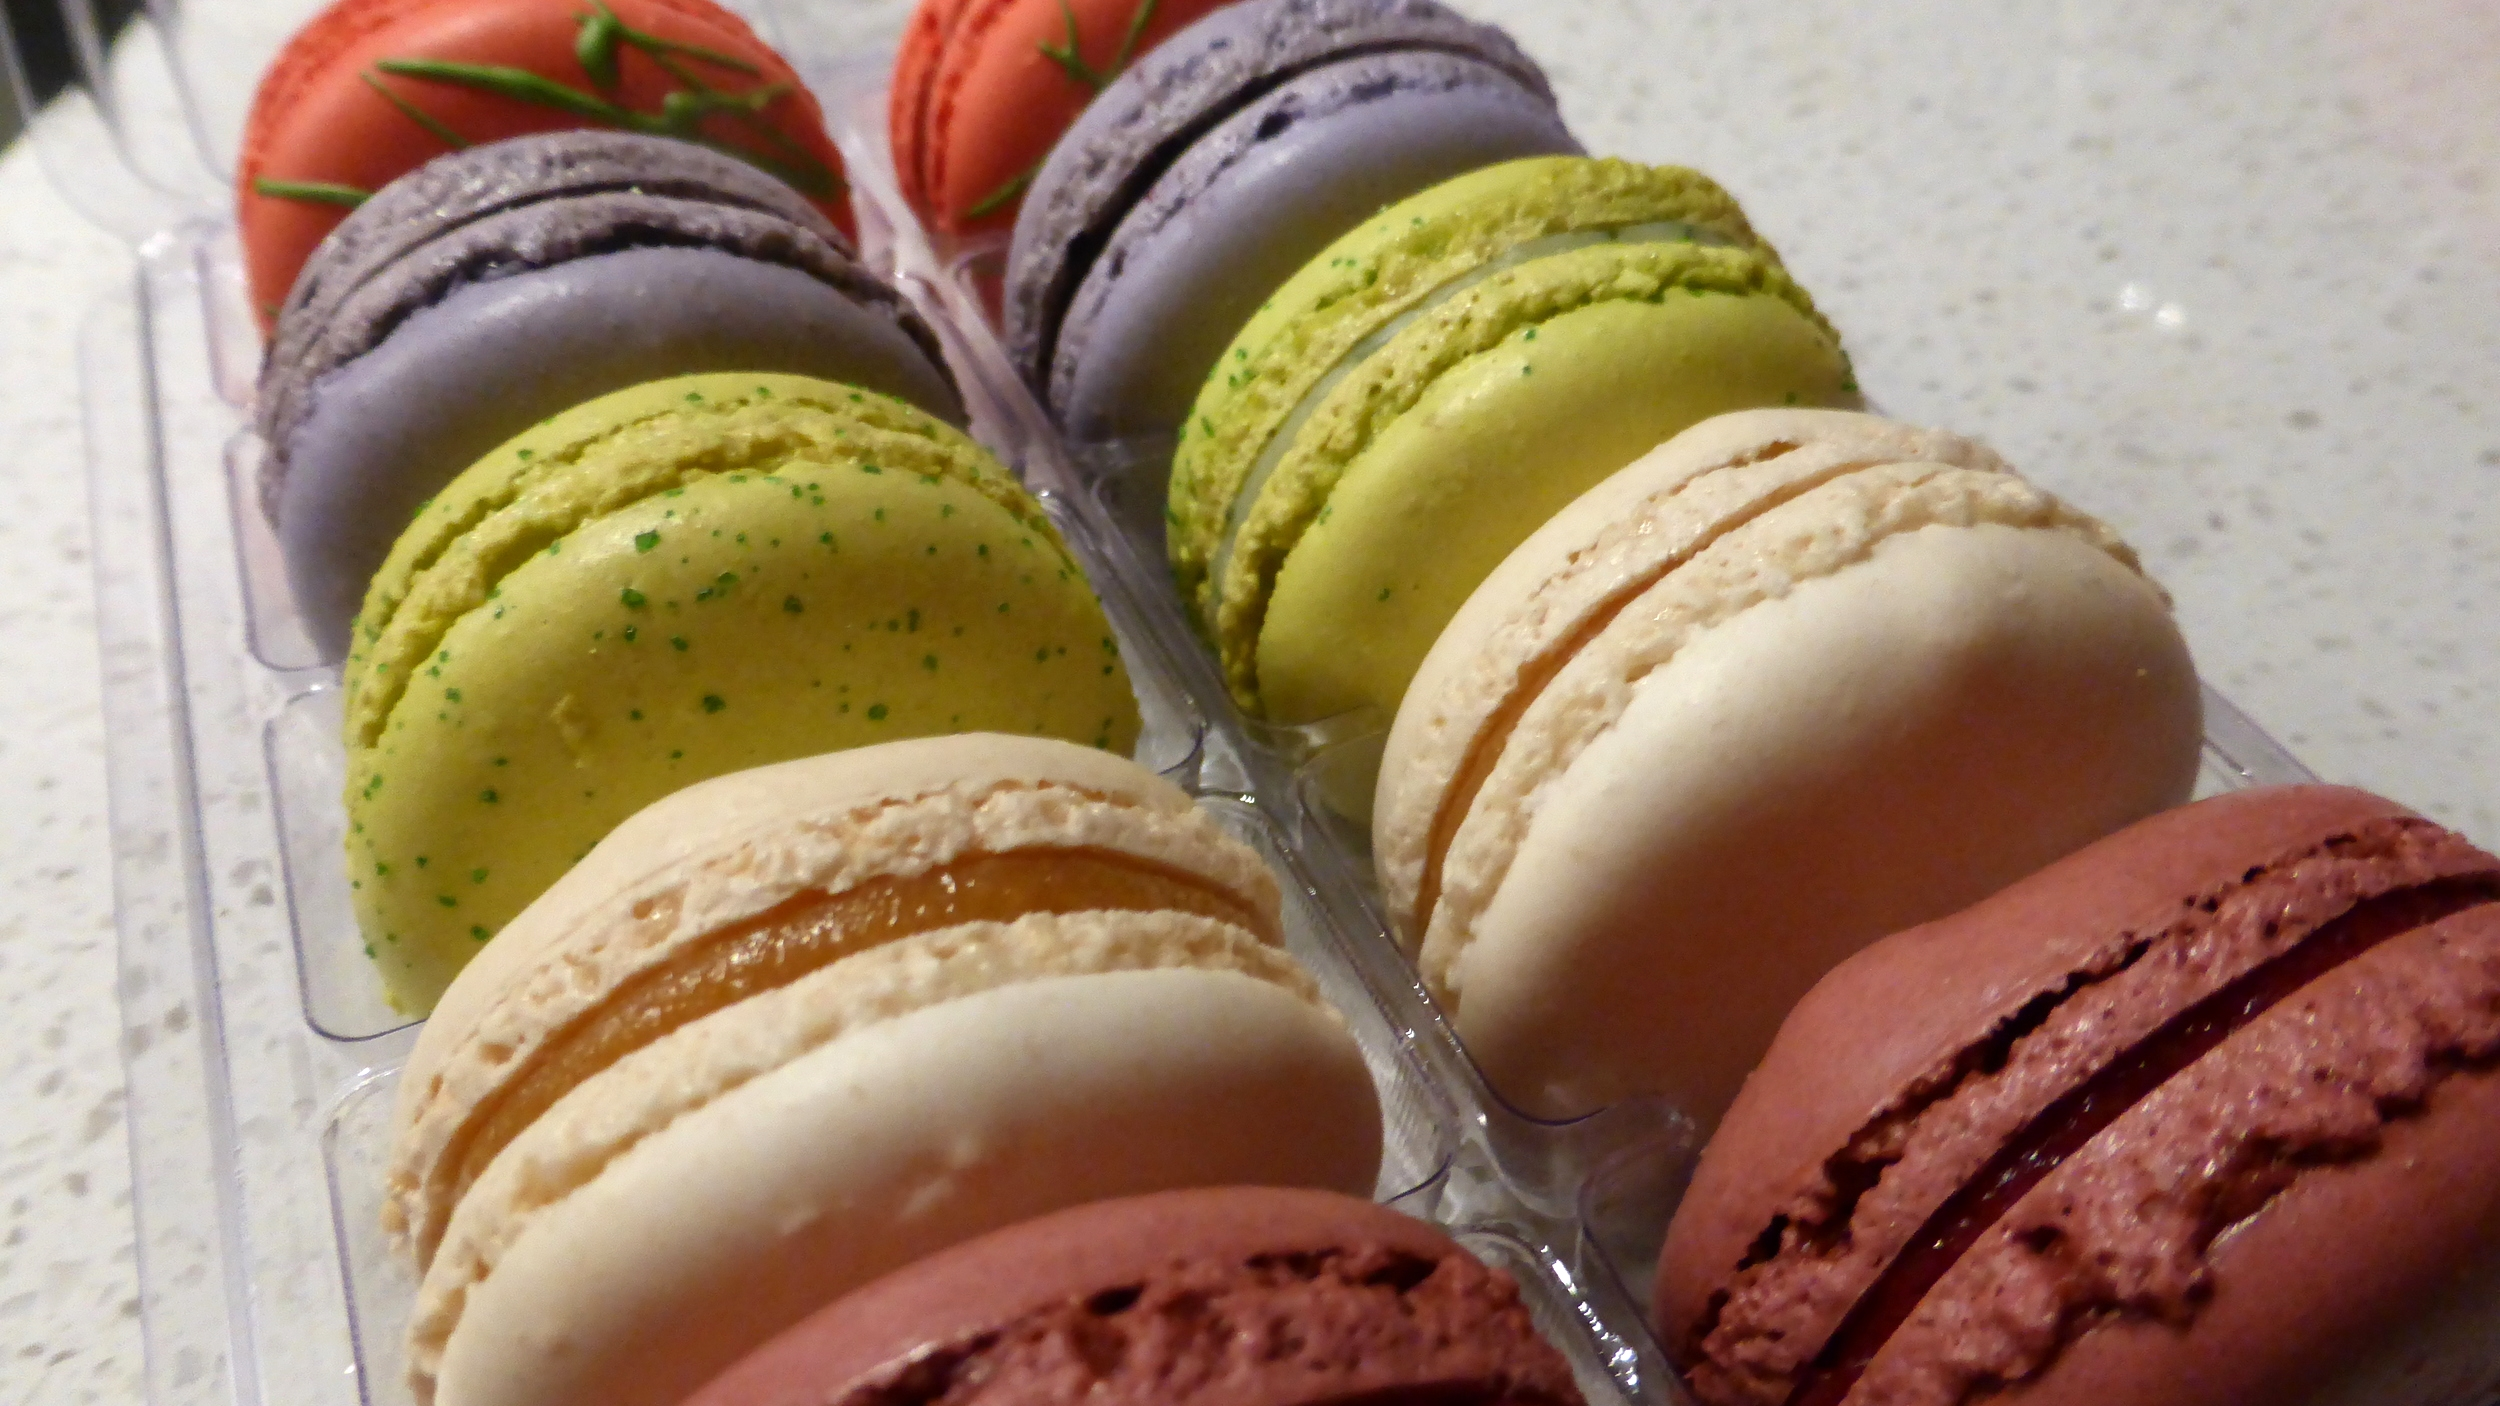 boutique point g - macarons montreal - montreal dessert - my girl montreal